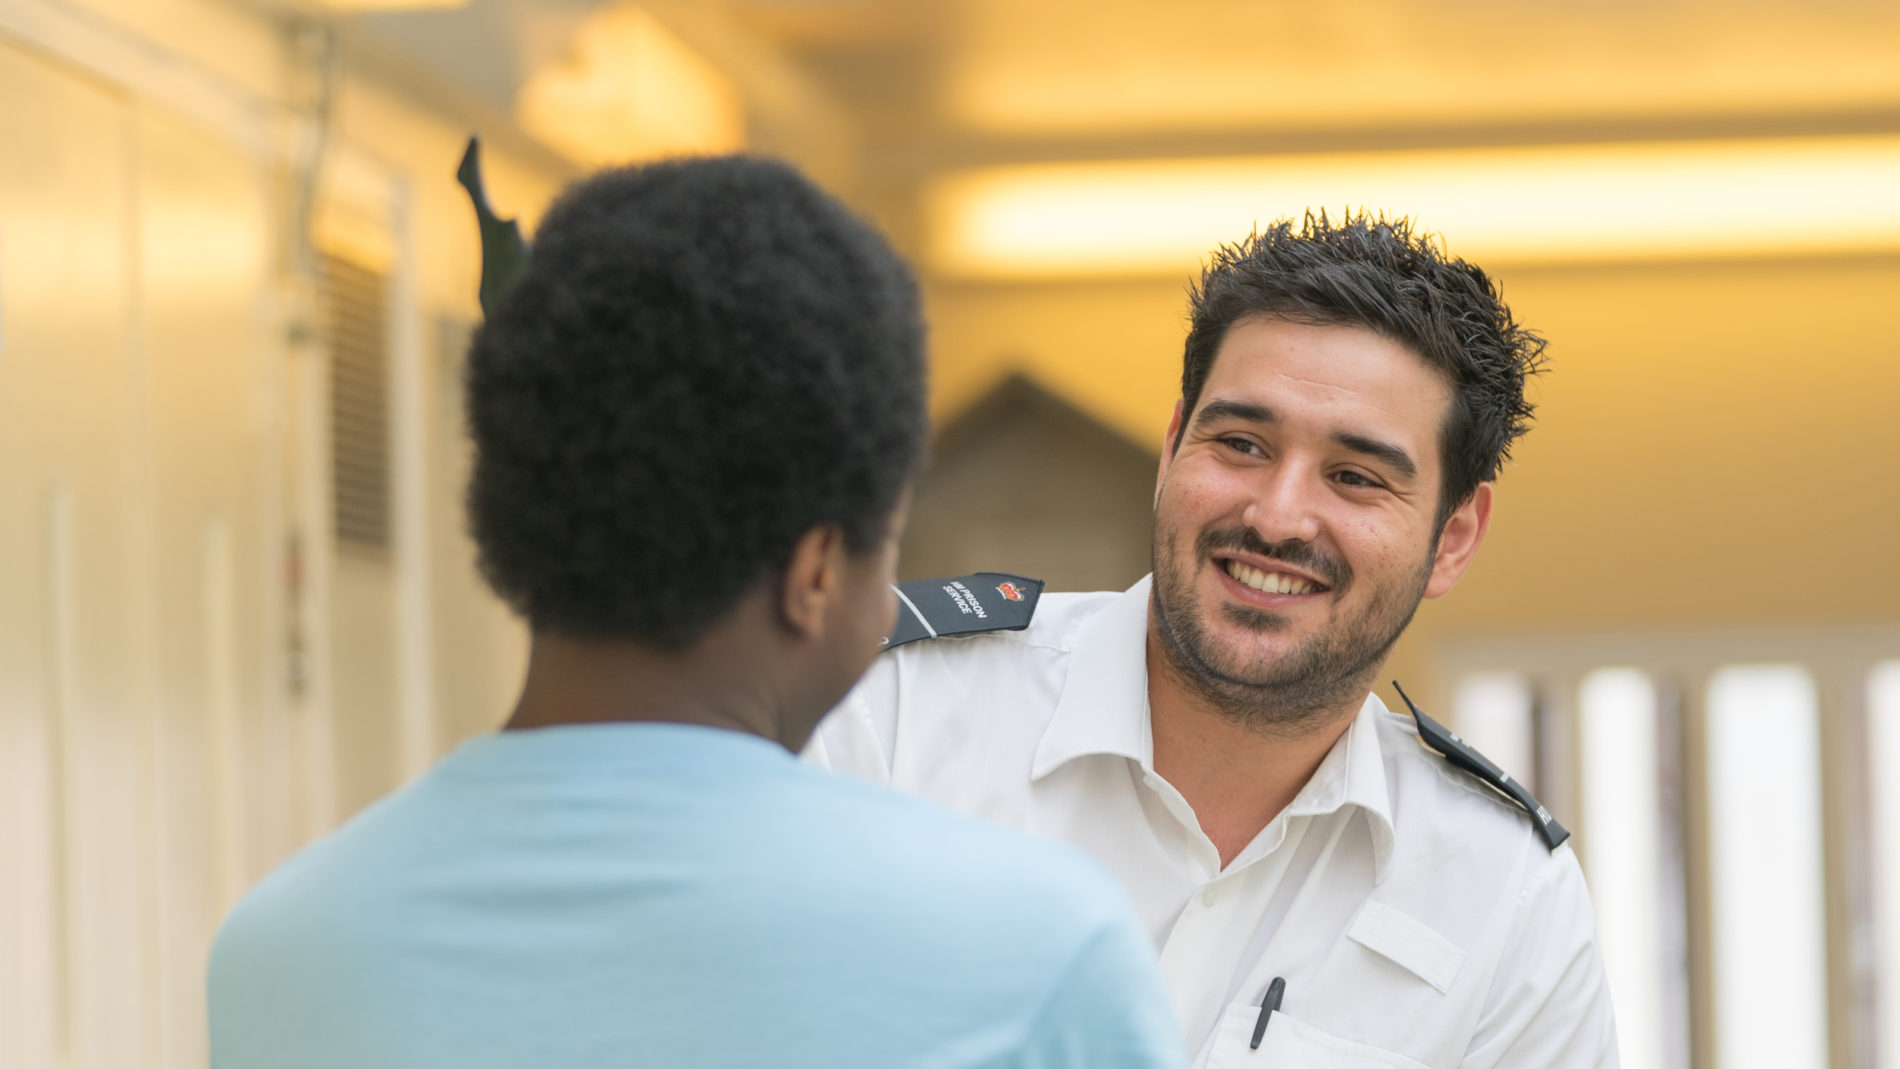 Prison officer rewards & benefits | HM Prison & Probation